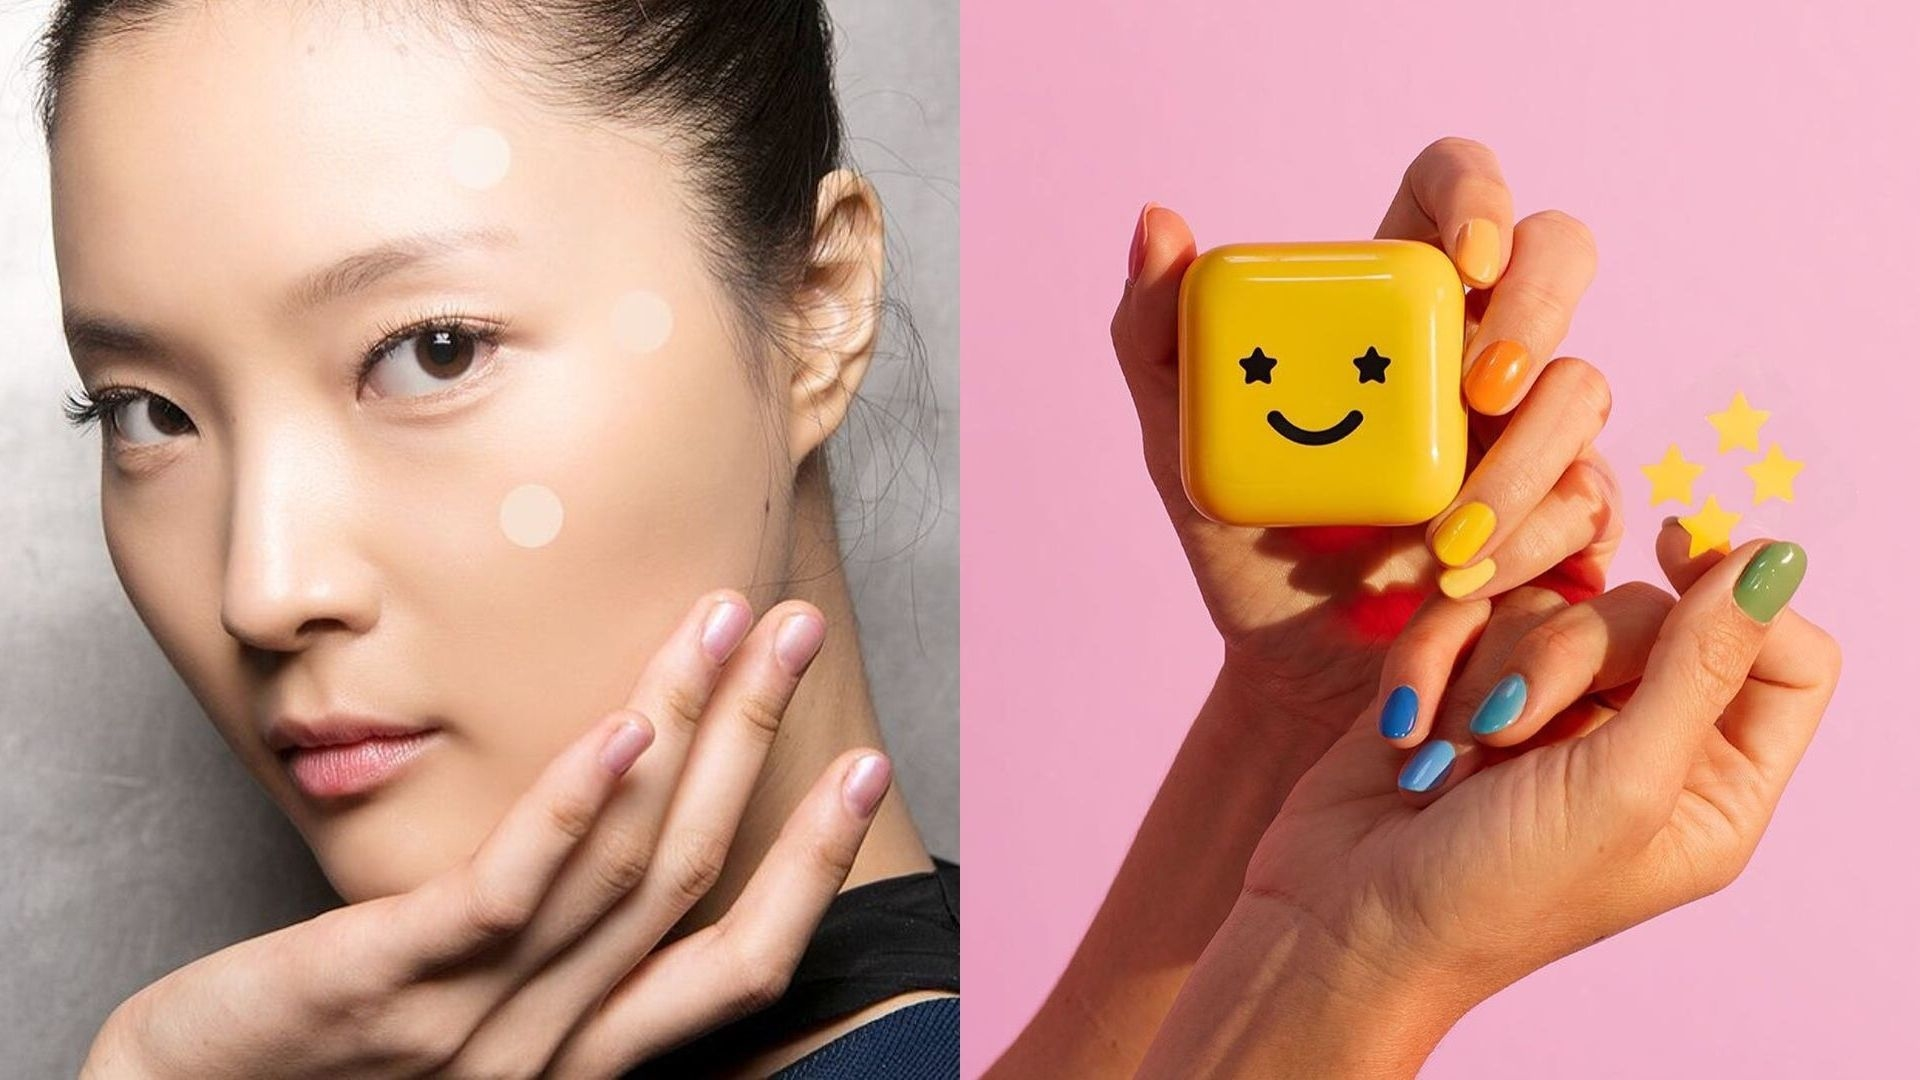 What Are Zit Stickers And Why We're Obsessed With Them